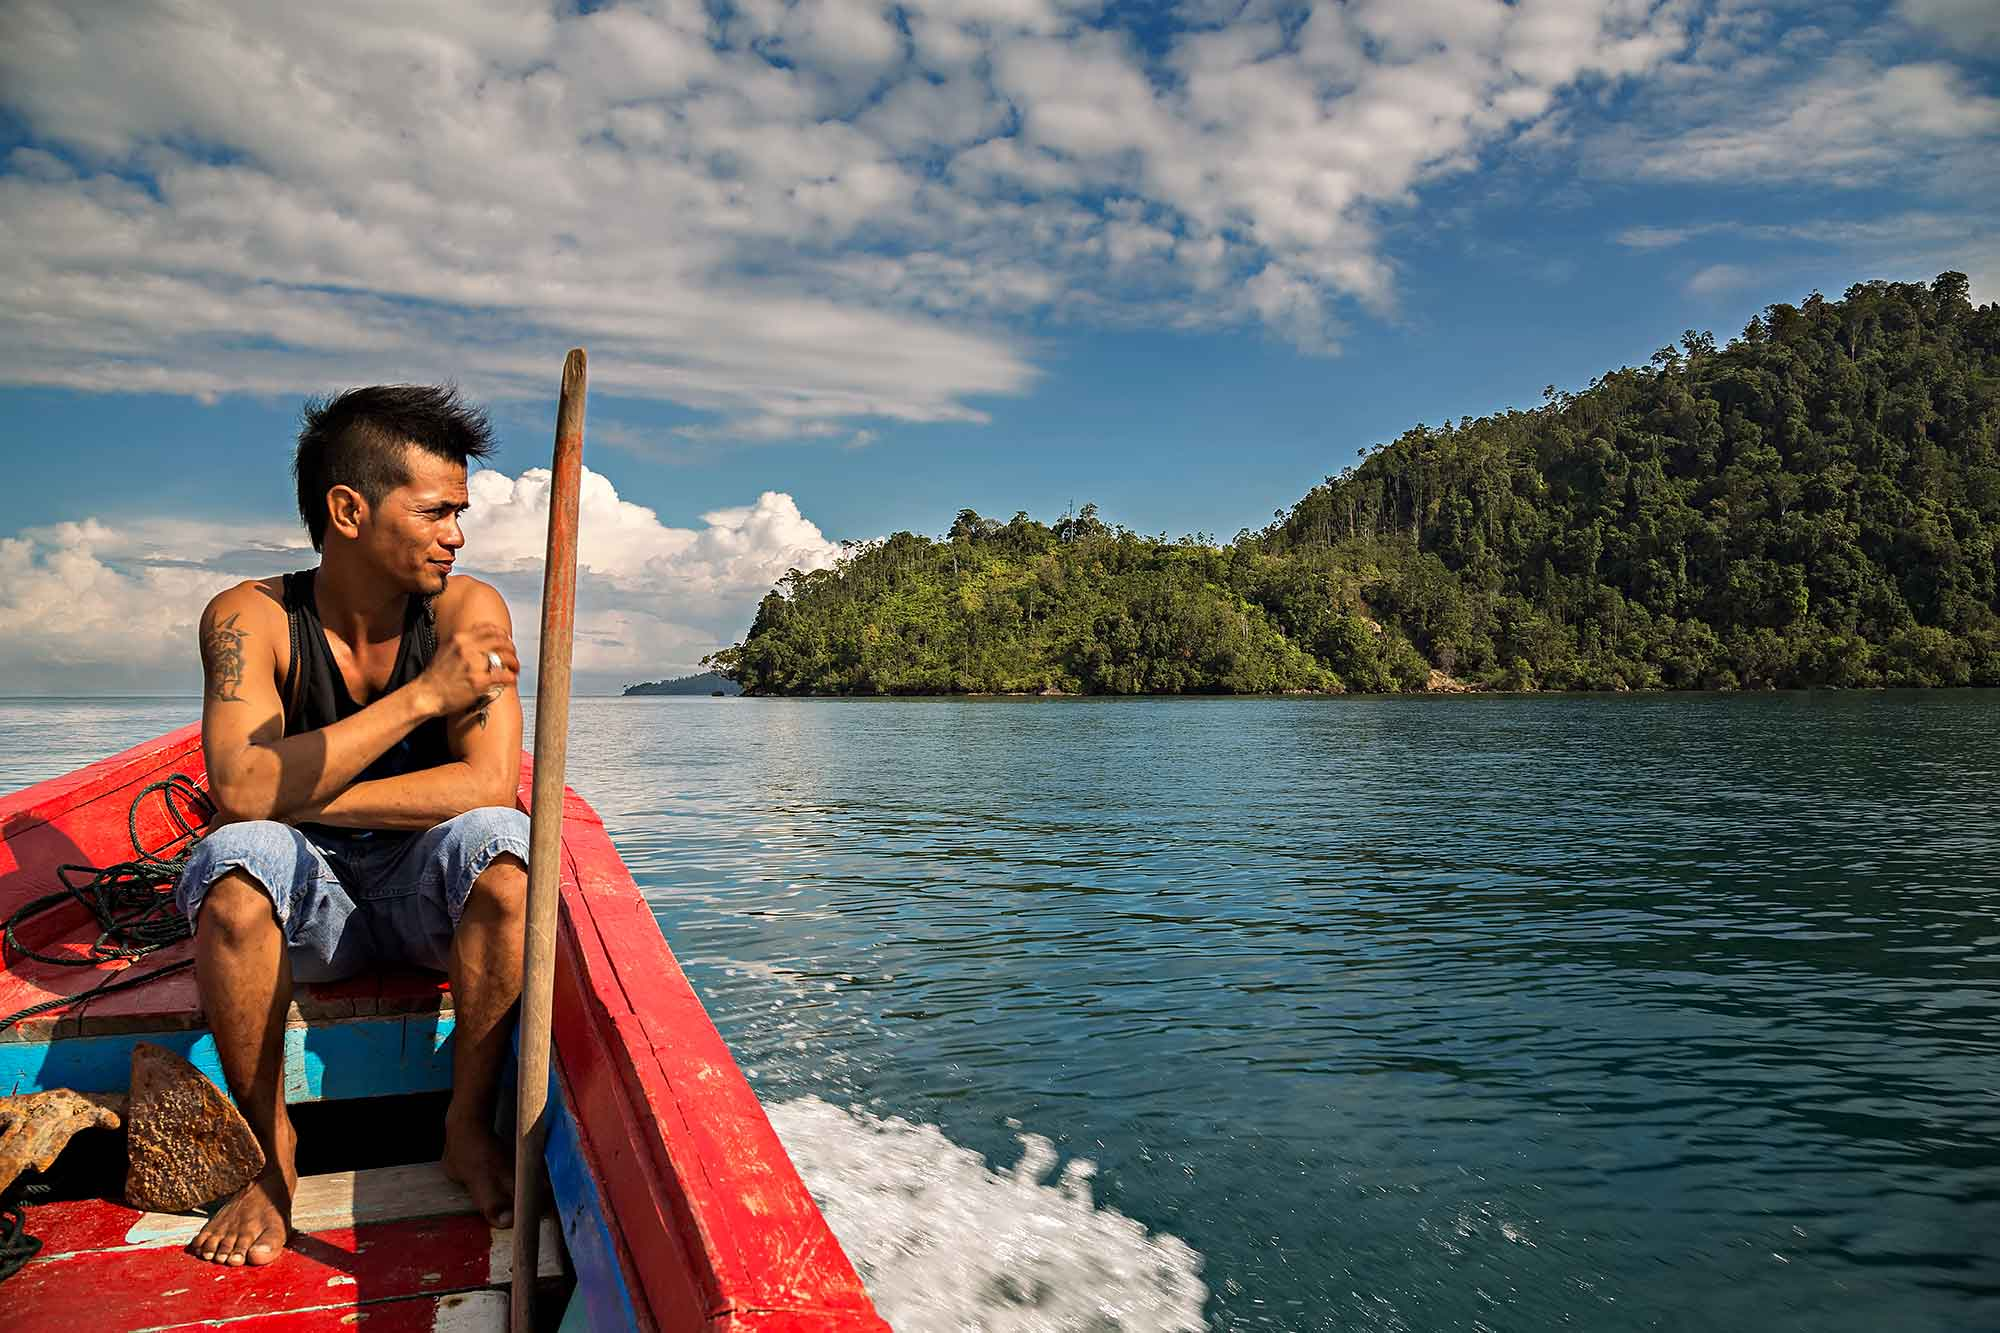 Exploring the islands off the coast of West Sumatra, Indonesia. © Ulli Maier & Nisa Maier